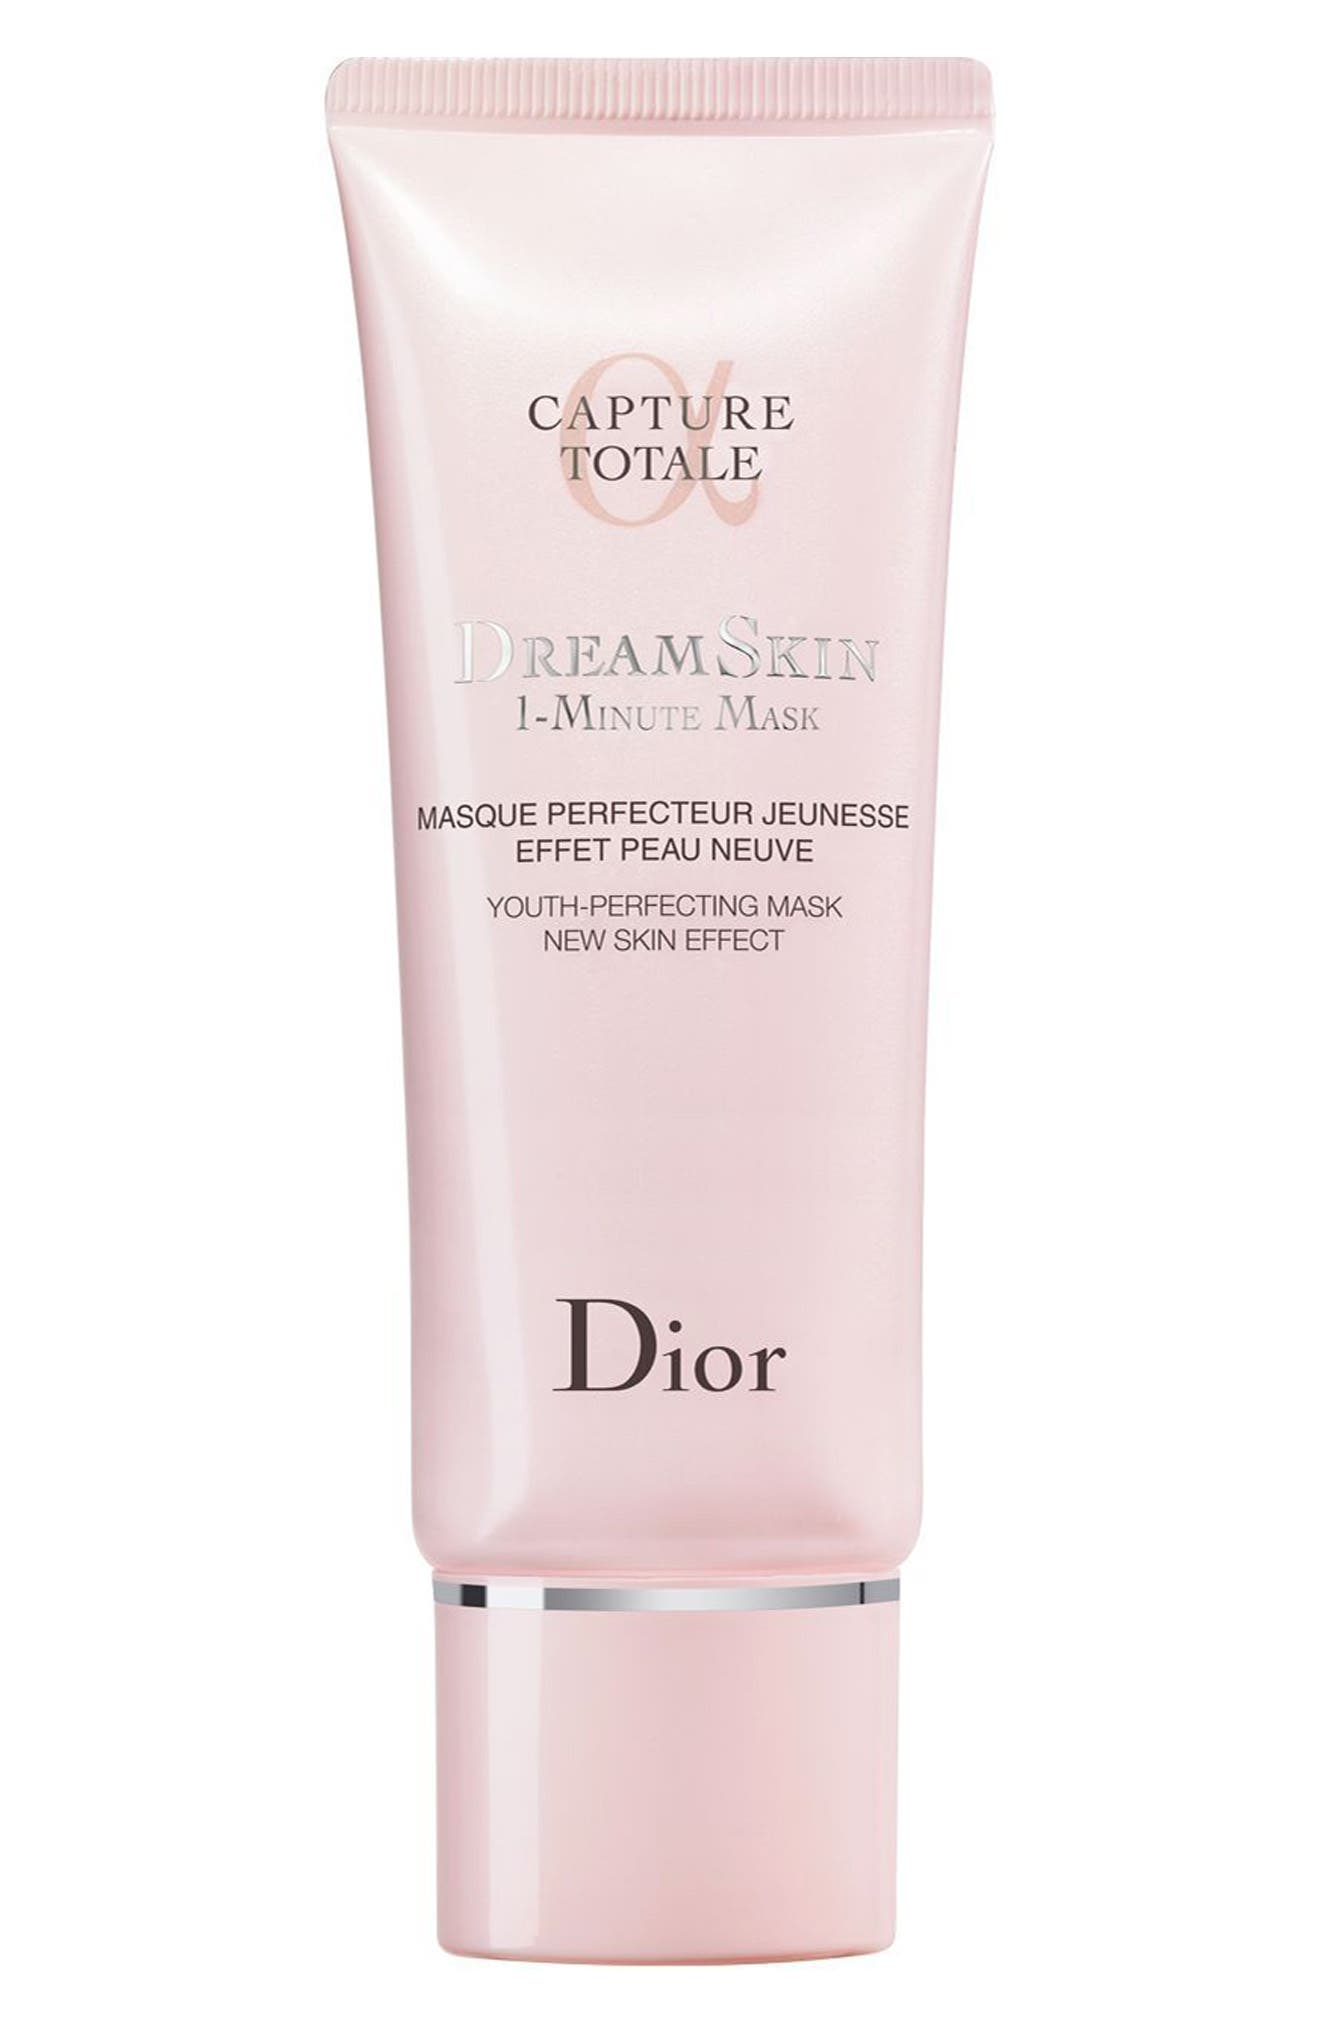 DIOR, Capture Totale DreamSkin 1-Minute Mask, Main thumbnail 1, color, NO COLOR